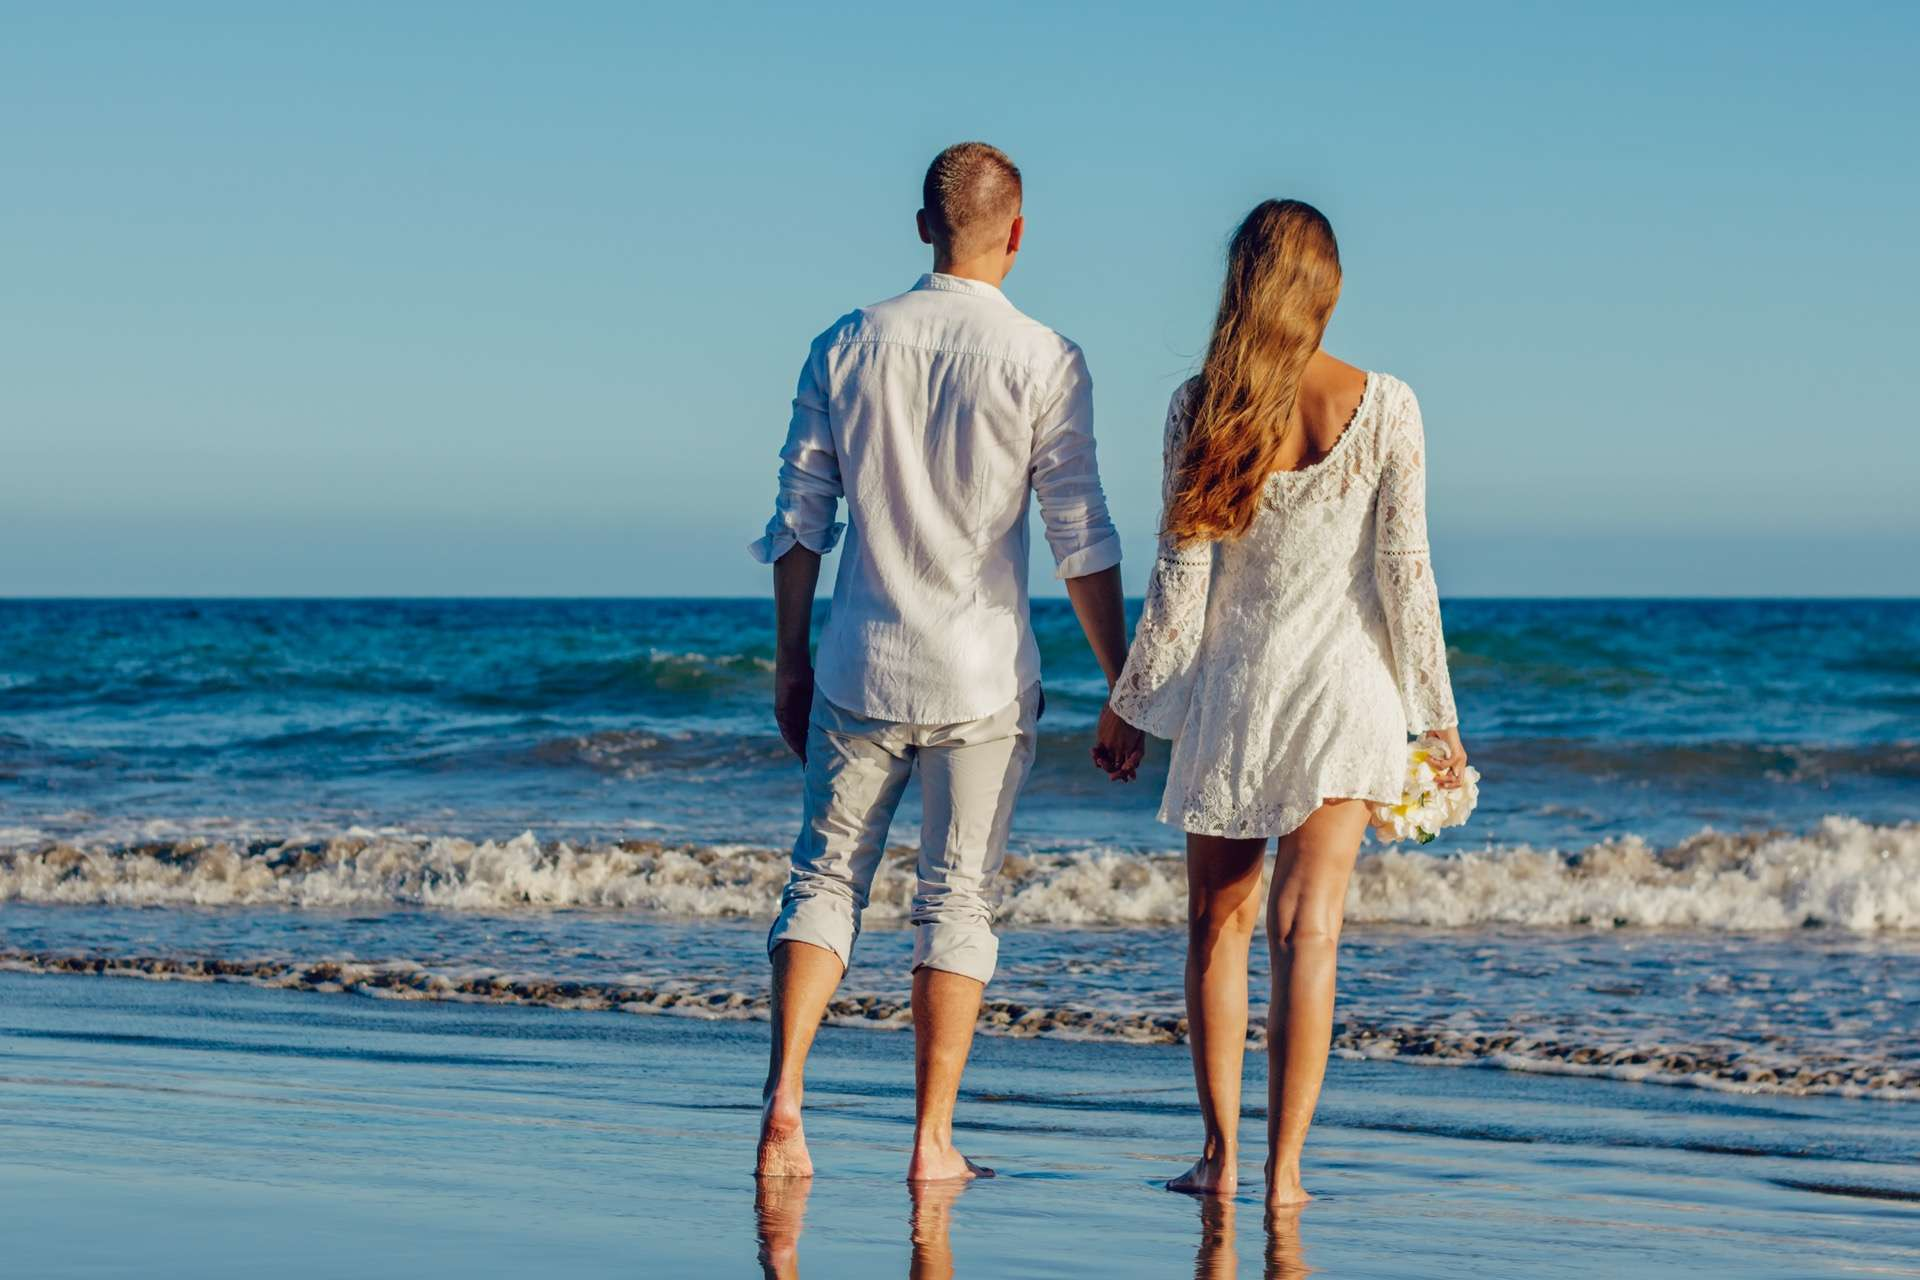 Ways to overcome complications in relationships